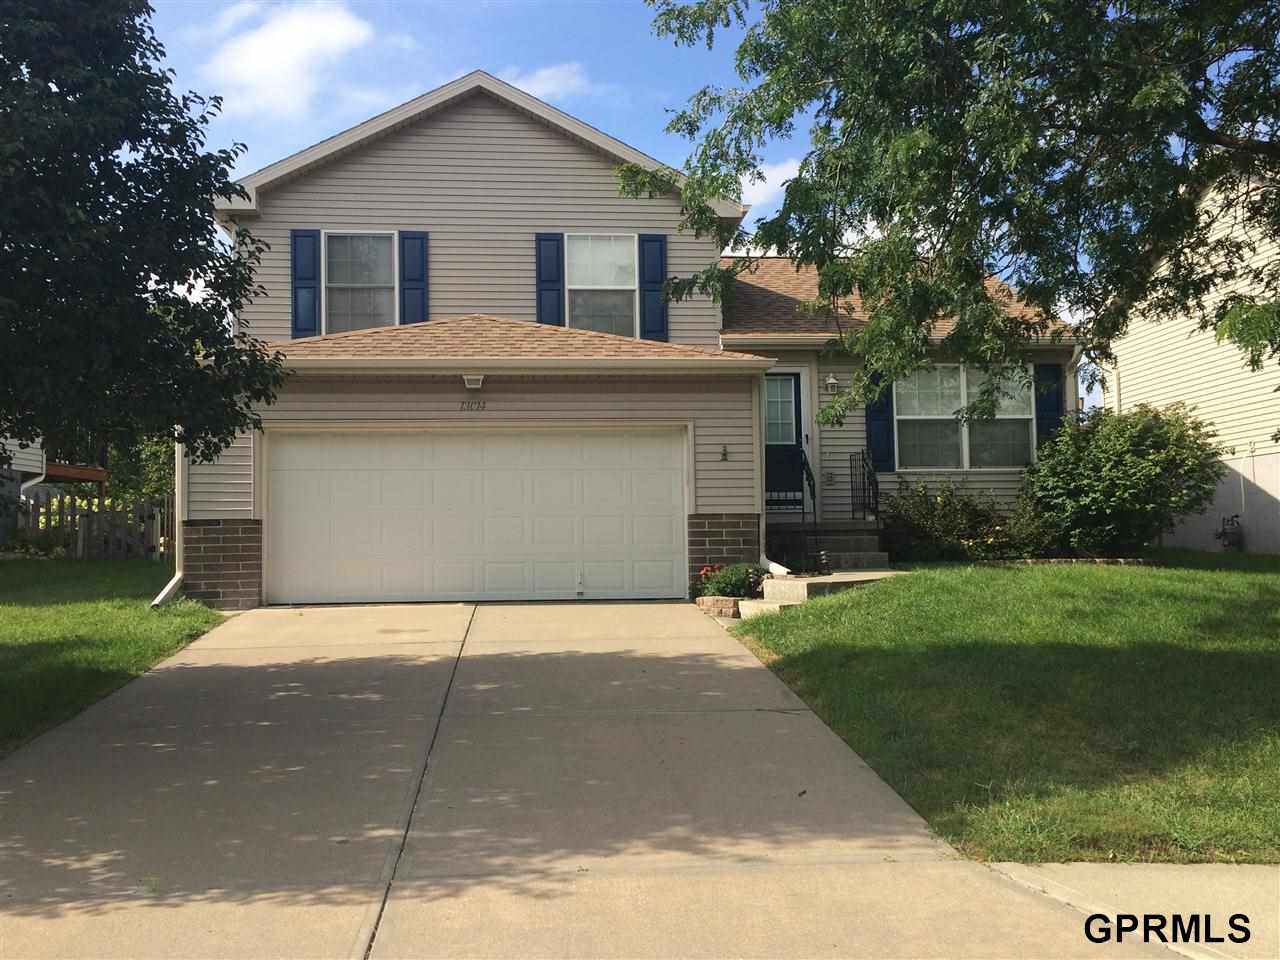 Rental Homes for Rent, ListingId:29586263, location: 13014 Curtis Ave Omaha 68164